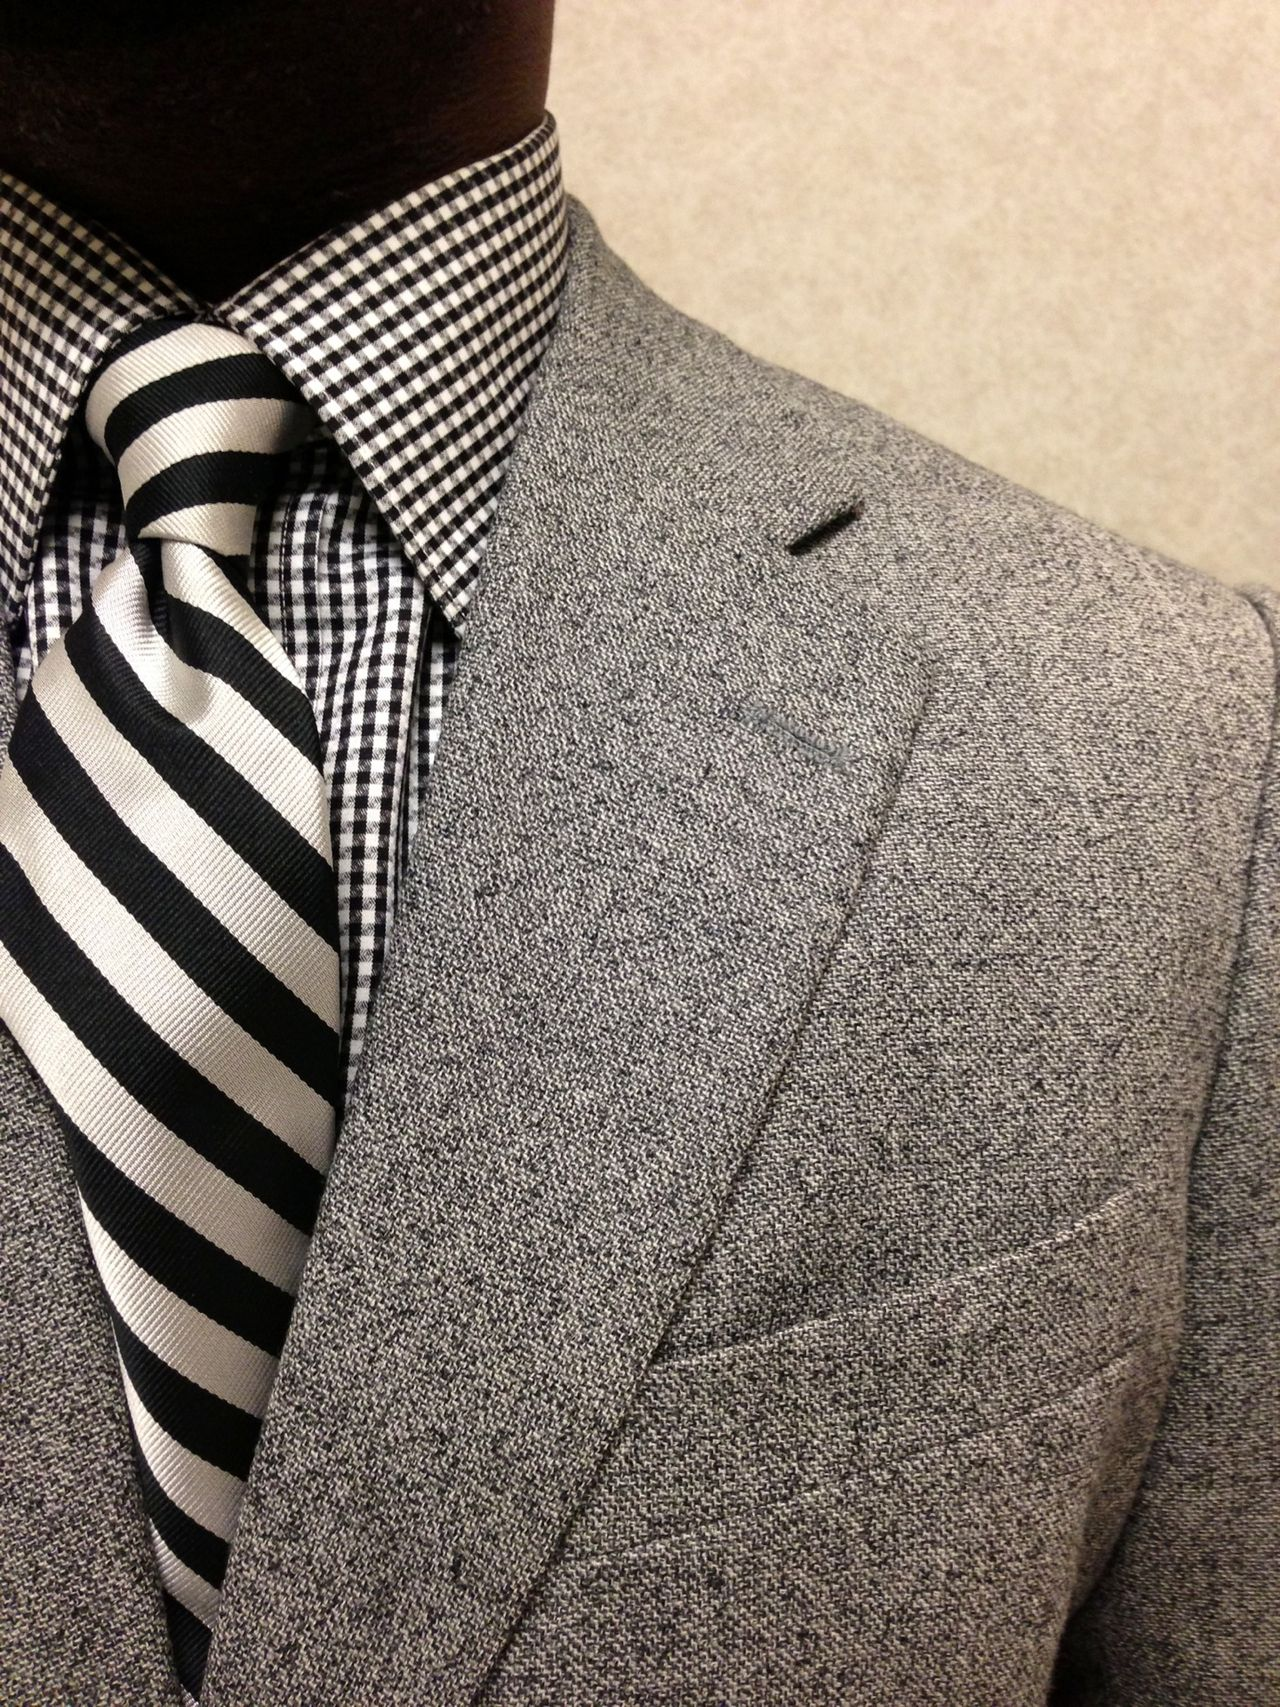 3000962404bf Striped tie and Checkered shirt beneath an elegant grey jacket. Love the  mix of pattern and texture.